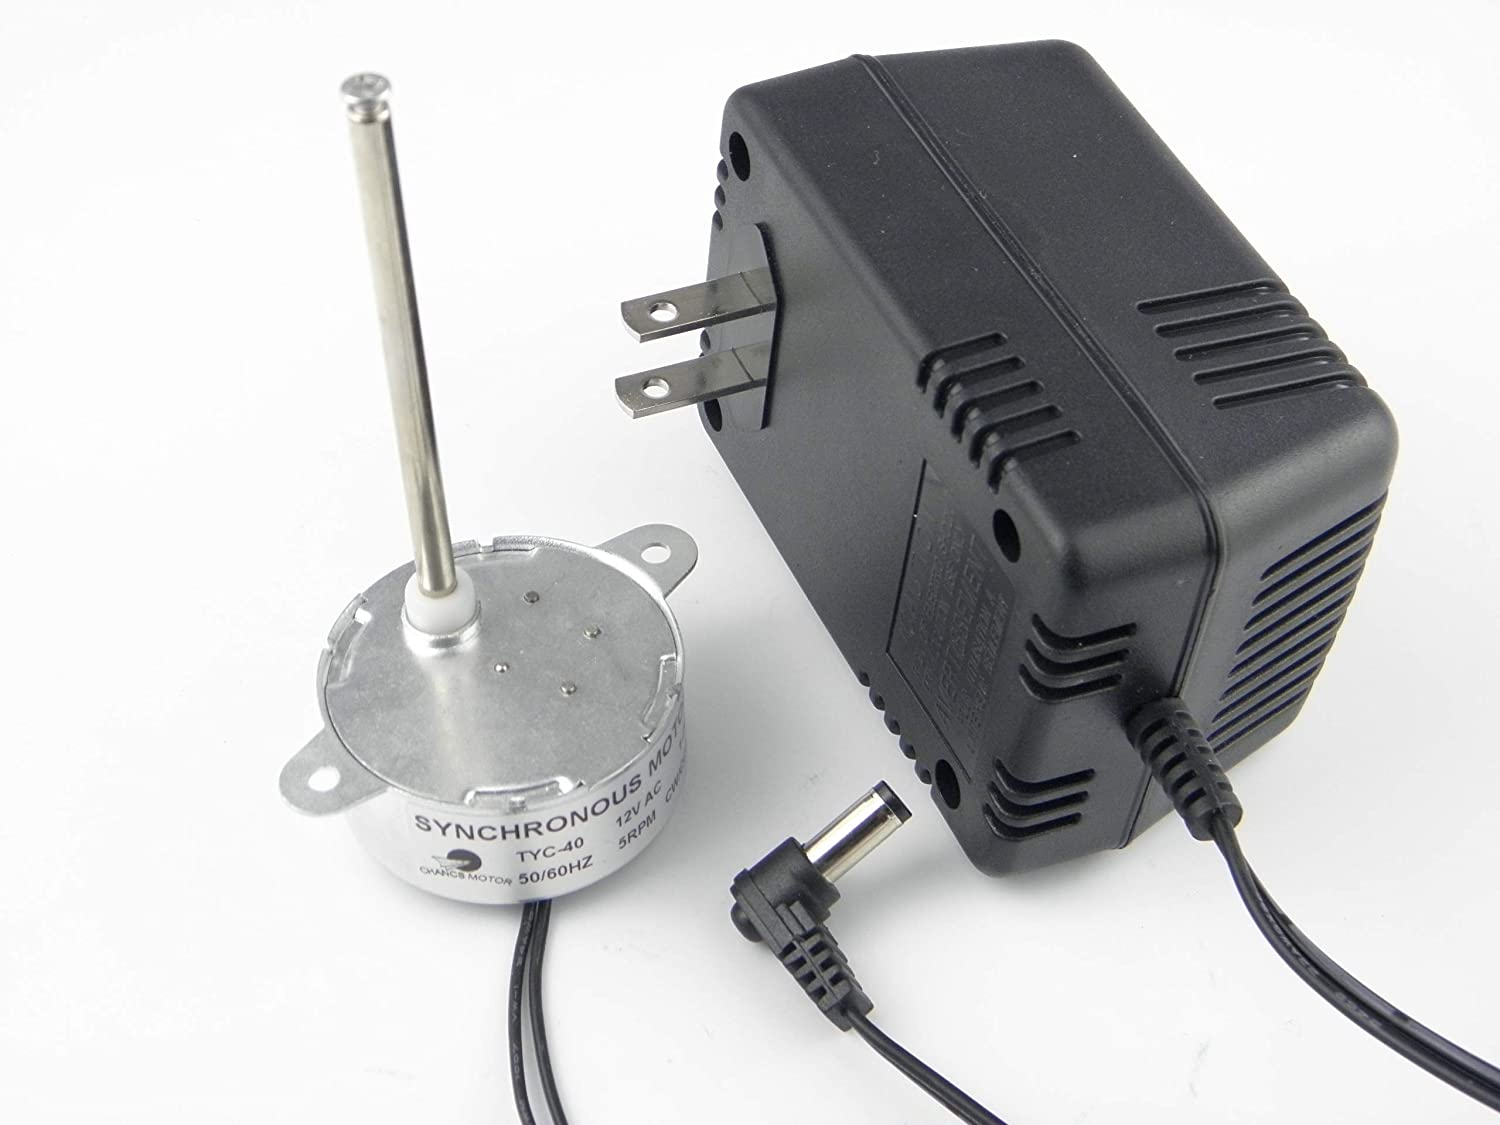 CHANCS TYC40 12V AC 5RPM Shaft 35mm Synchronous Motor with AC Wall Power Adapter Input 110V Output AC 12V for Christmas Decoration